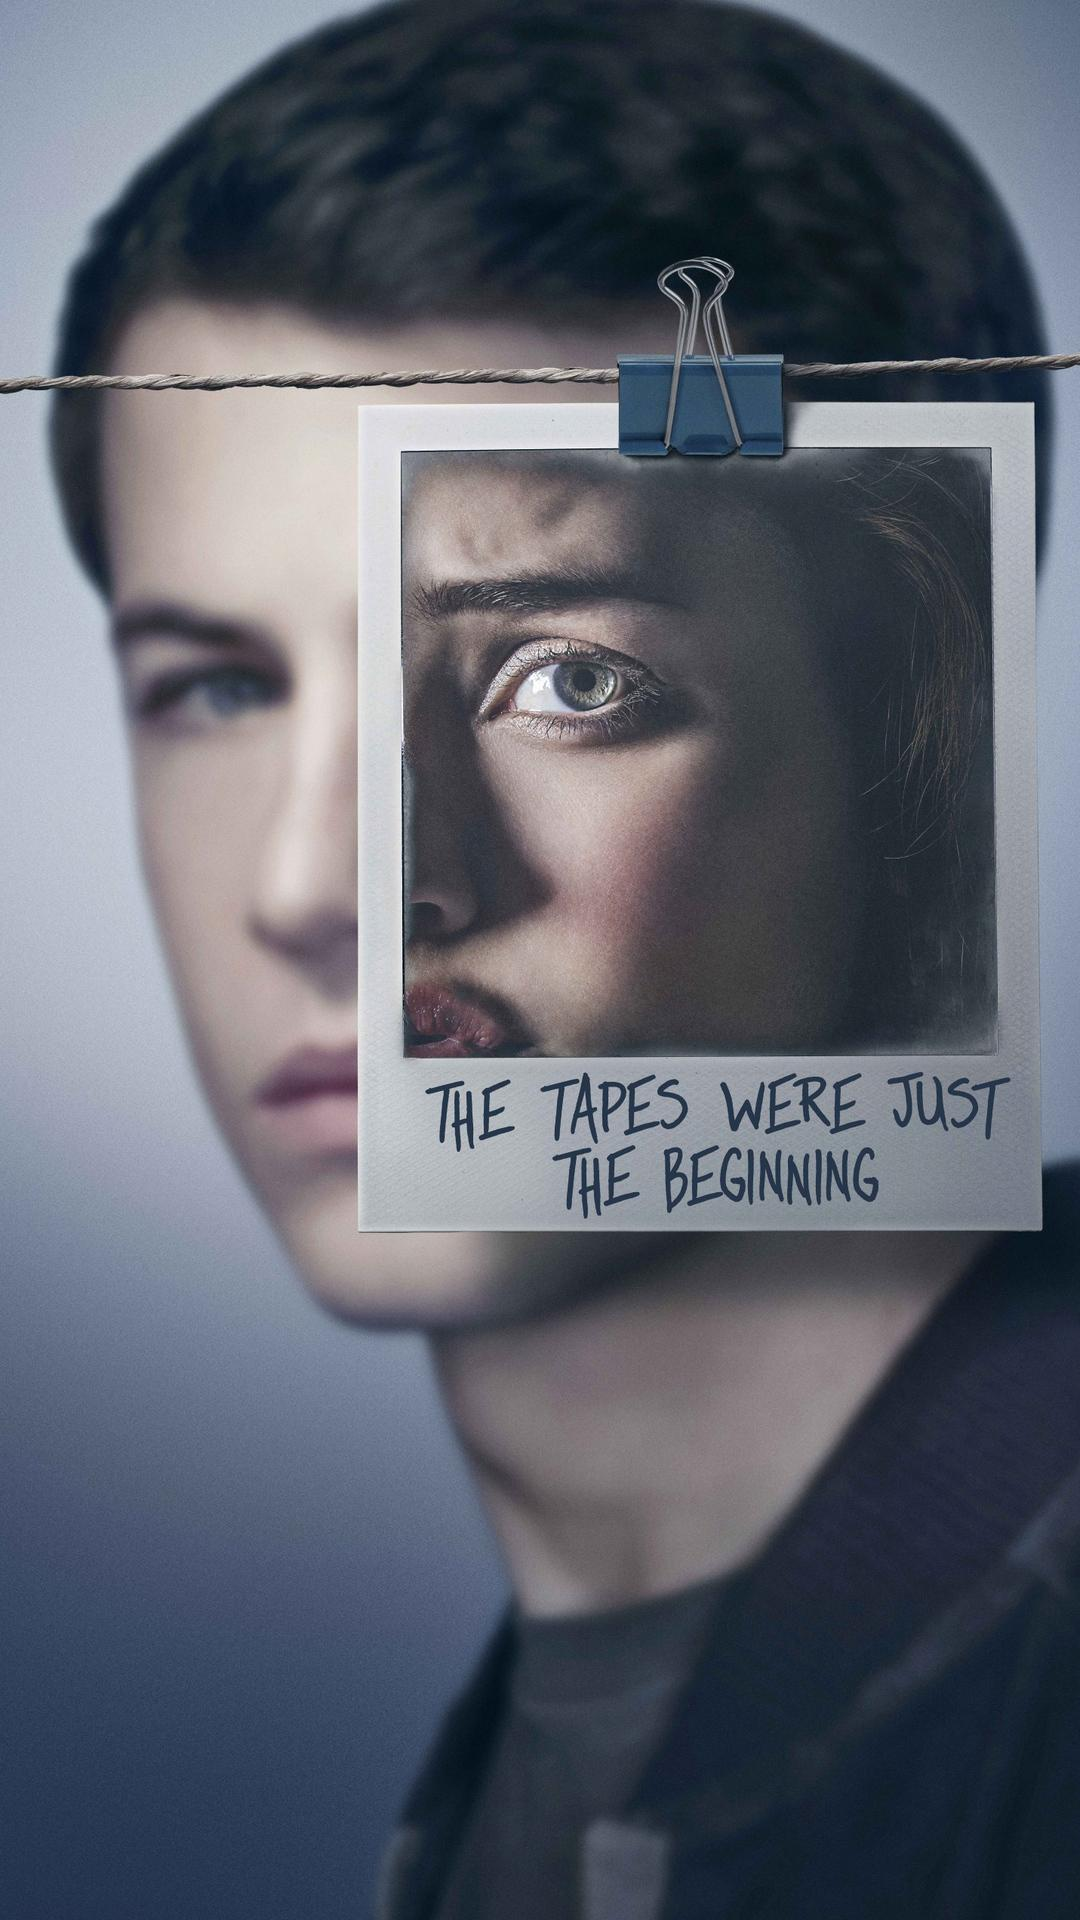 1080x1920 Clay Jensen 13 Reasons Why Season 2 Poster Iphone 7,6s,6